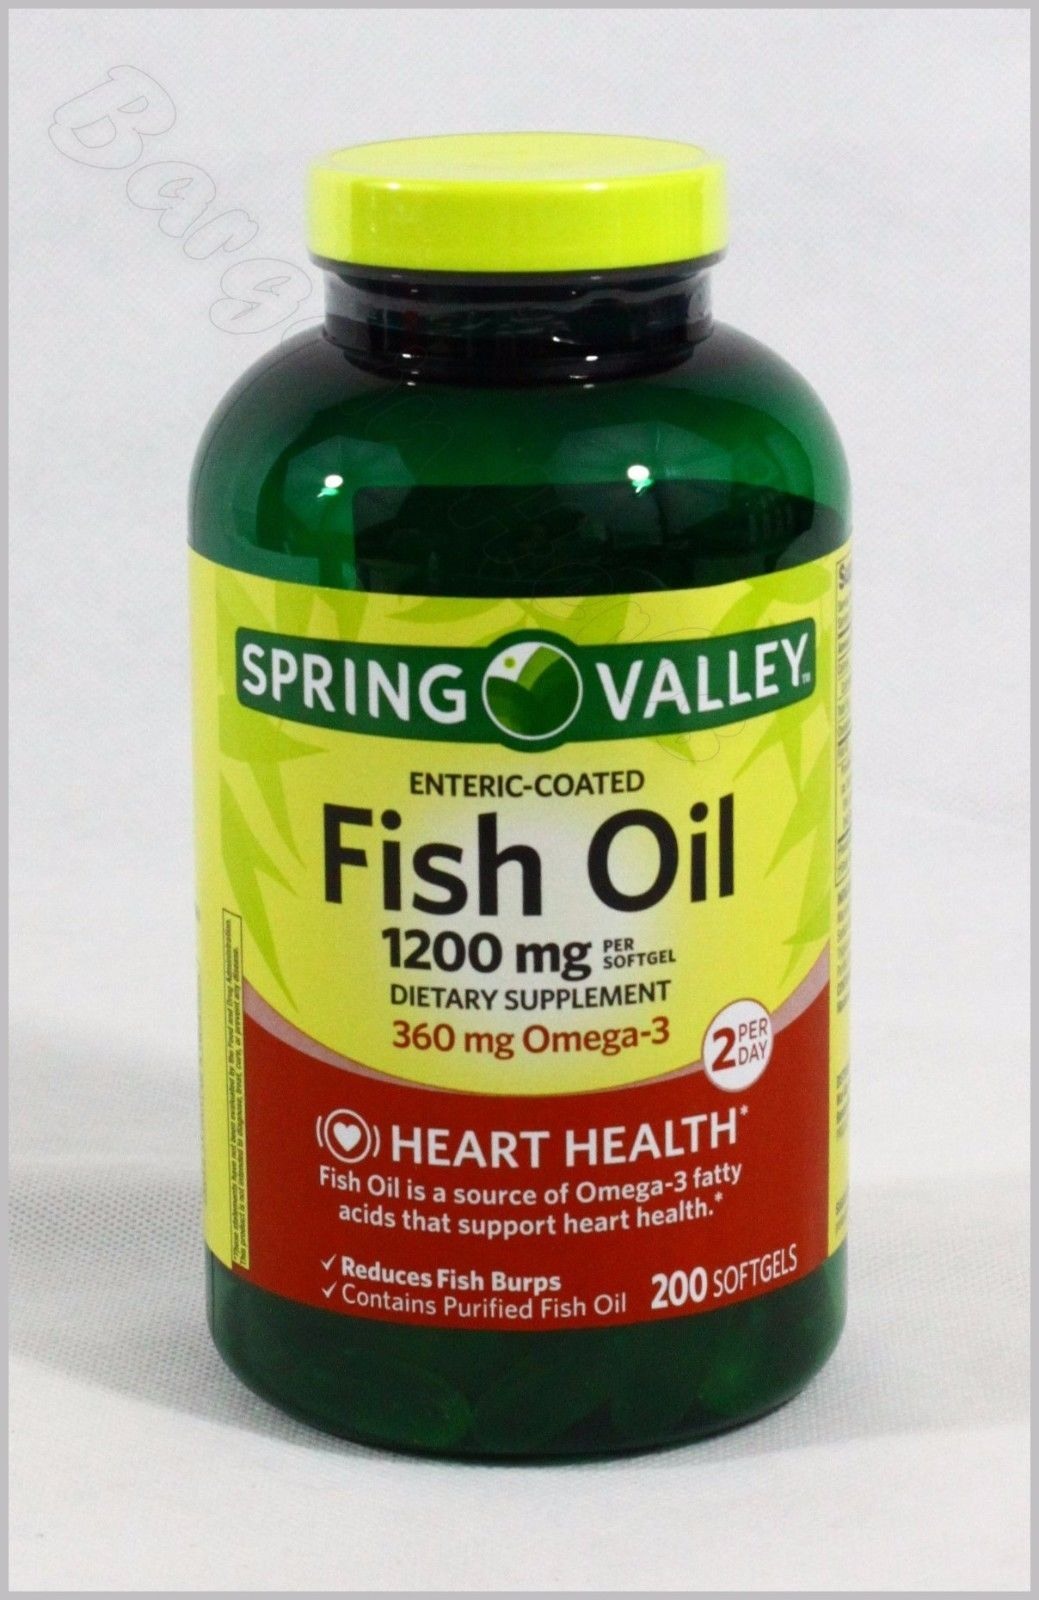 Spring Valley Enteric Coated Fish Oil 1200mg 200 Softgels Free